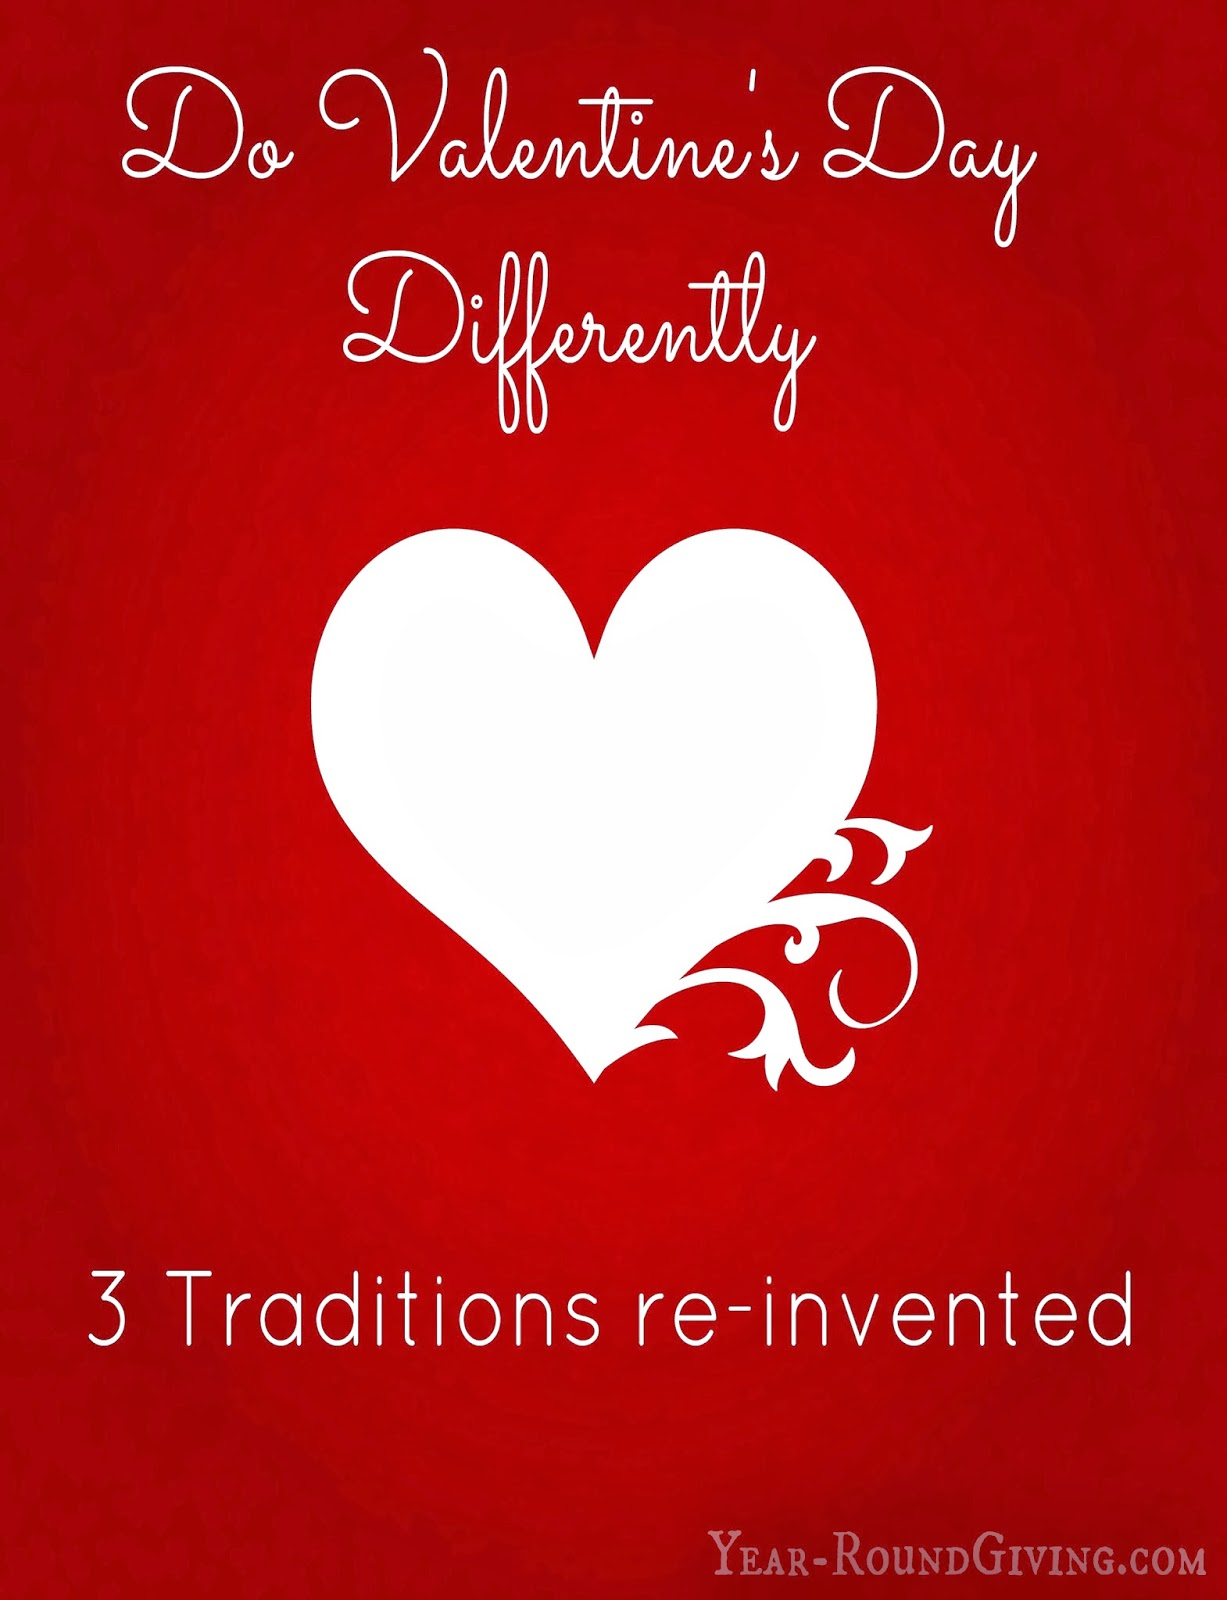 Do Valentine's Day Differently. 3 Tradtions Re-Invented